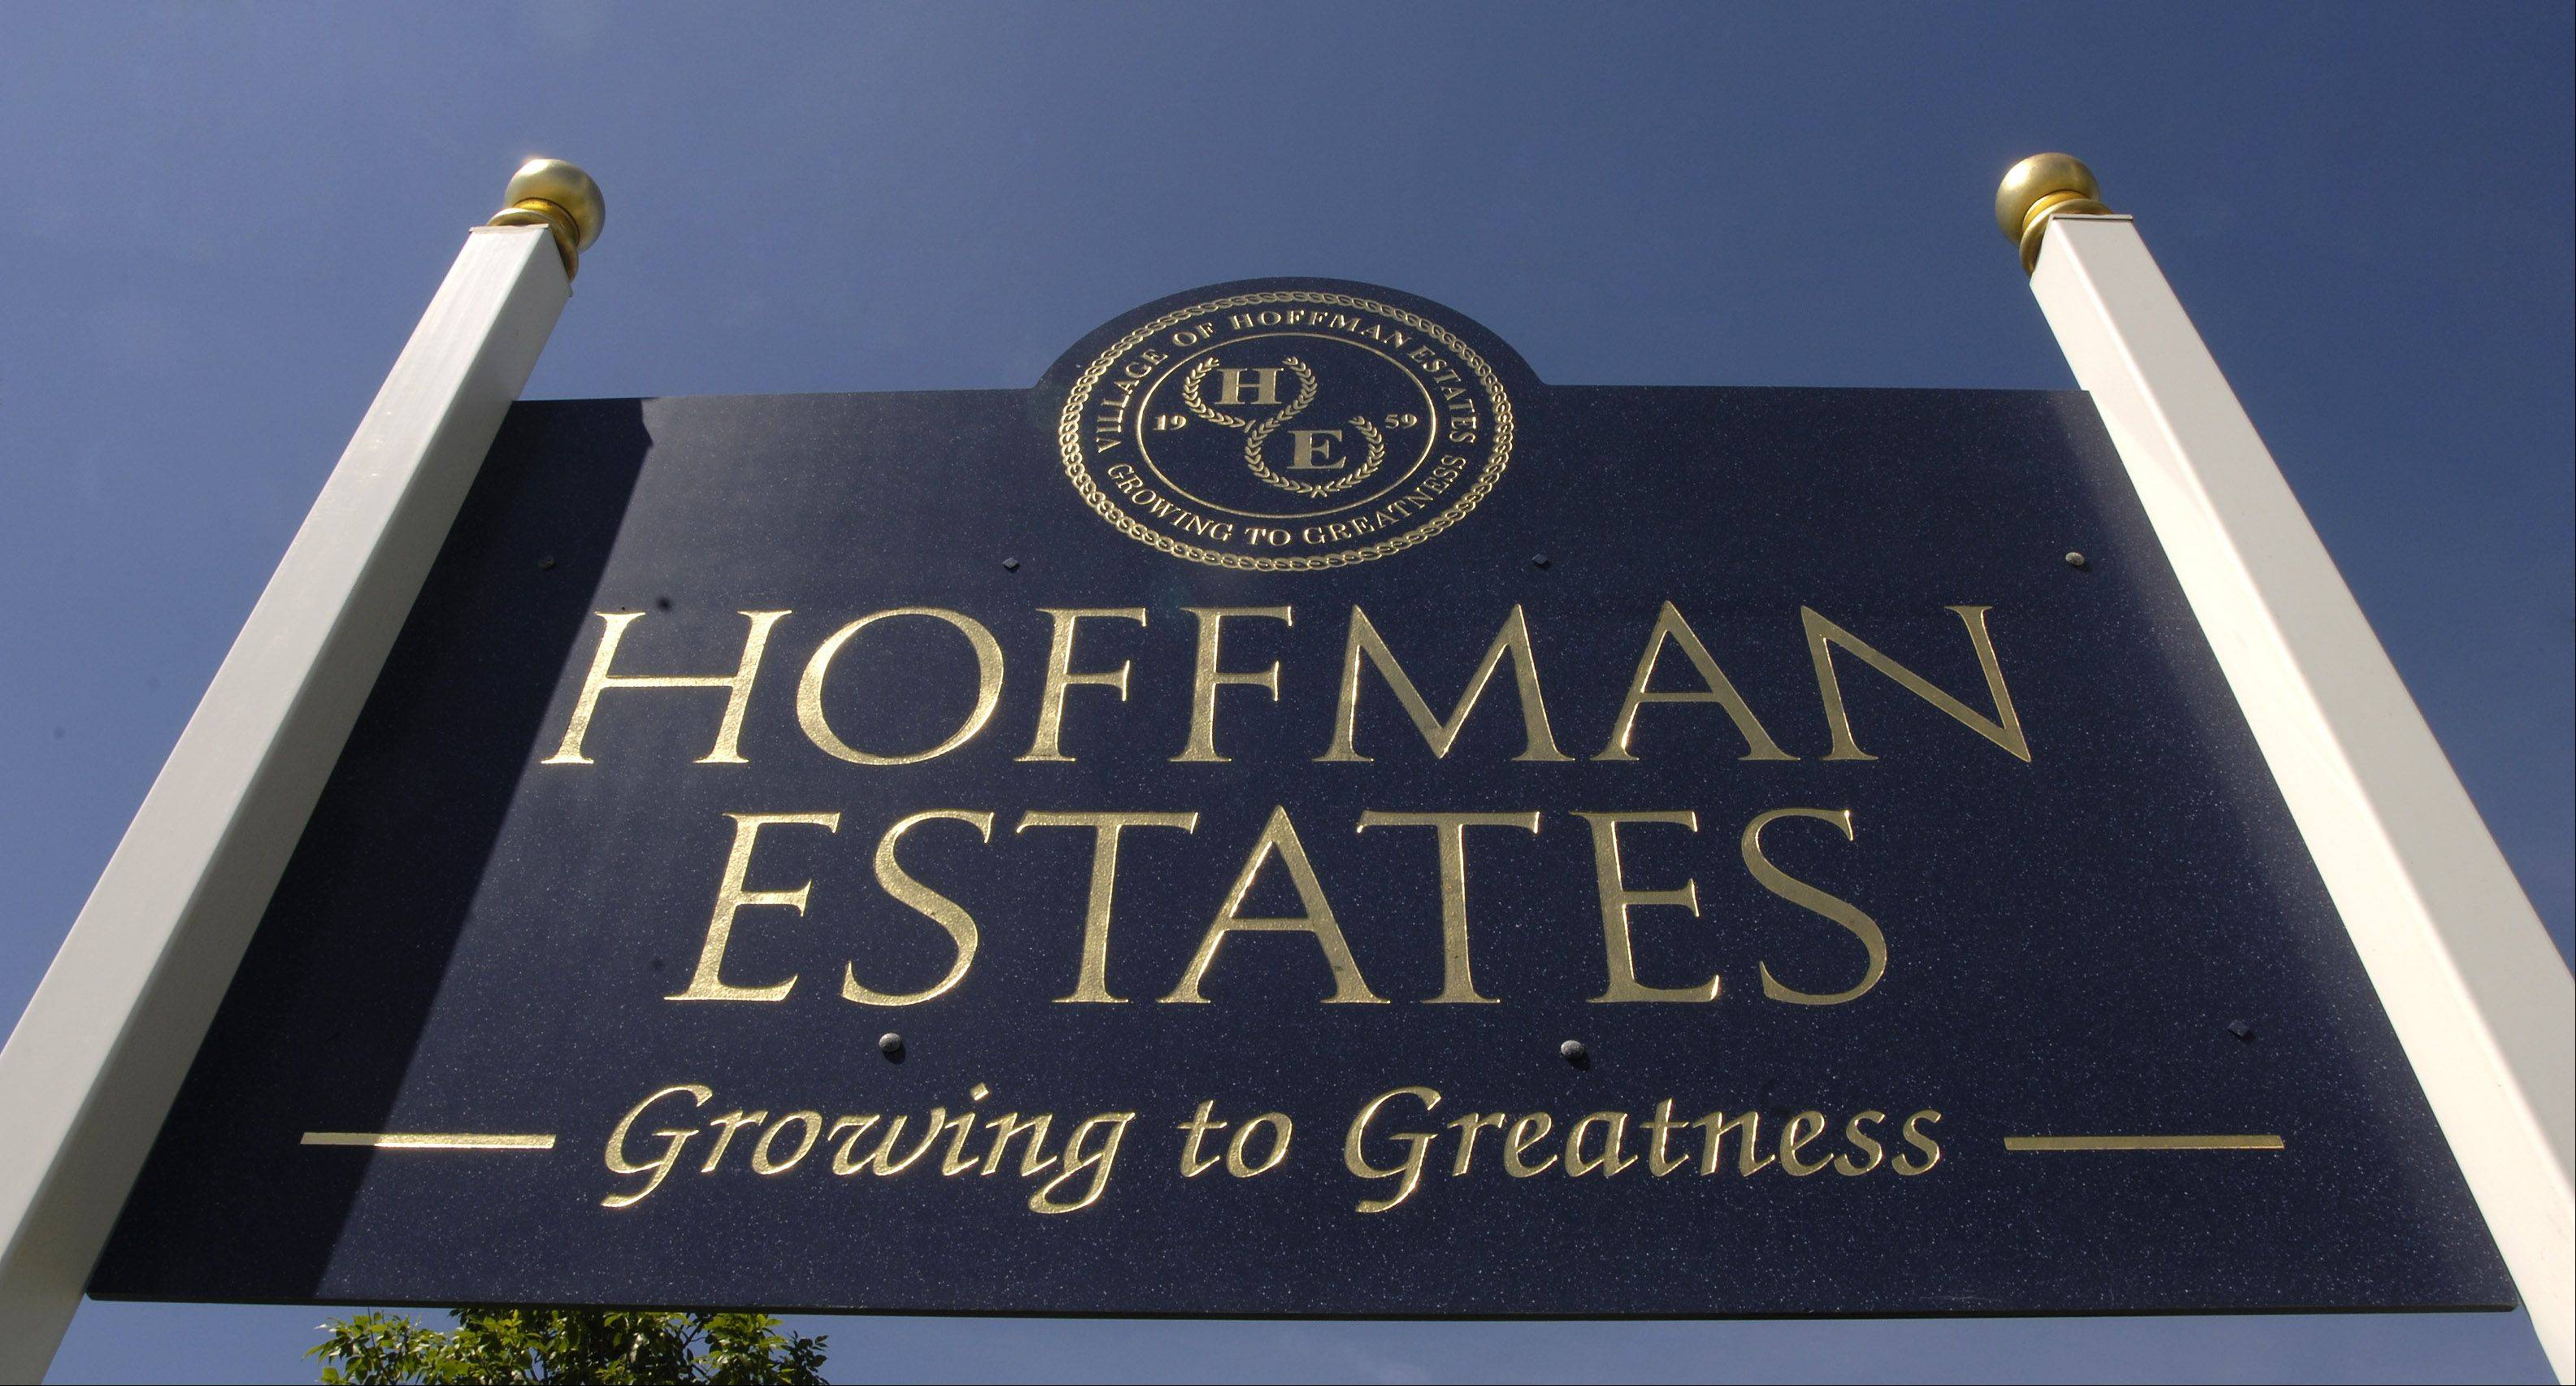 The average Hoffman Estates resident can expect to pay $100 more per year with the new taxes and fee approved by the village board.